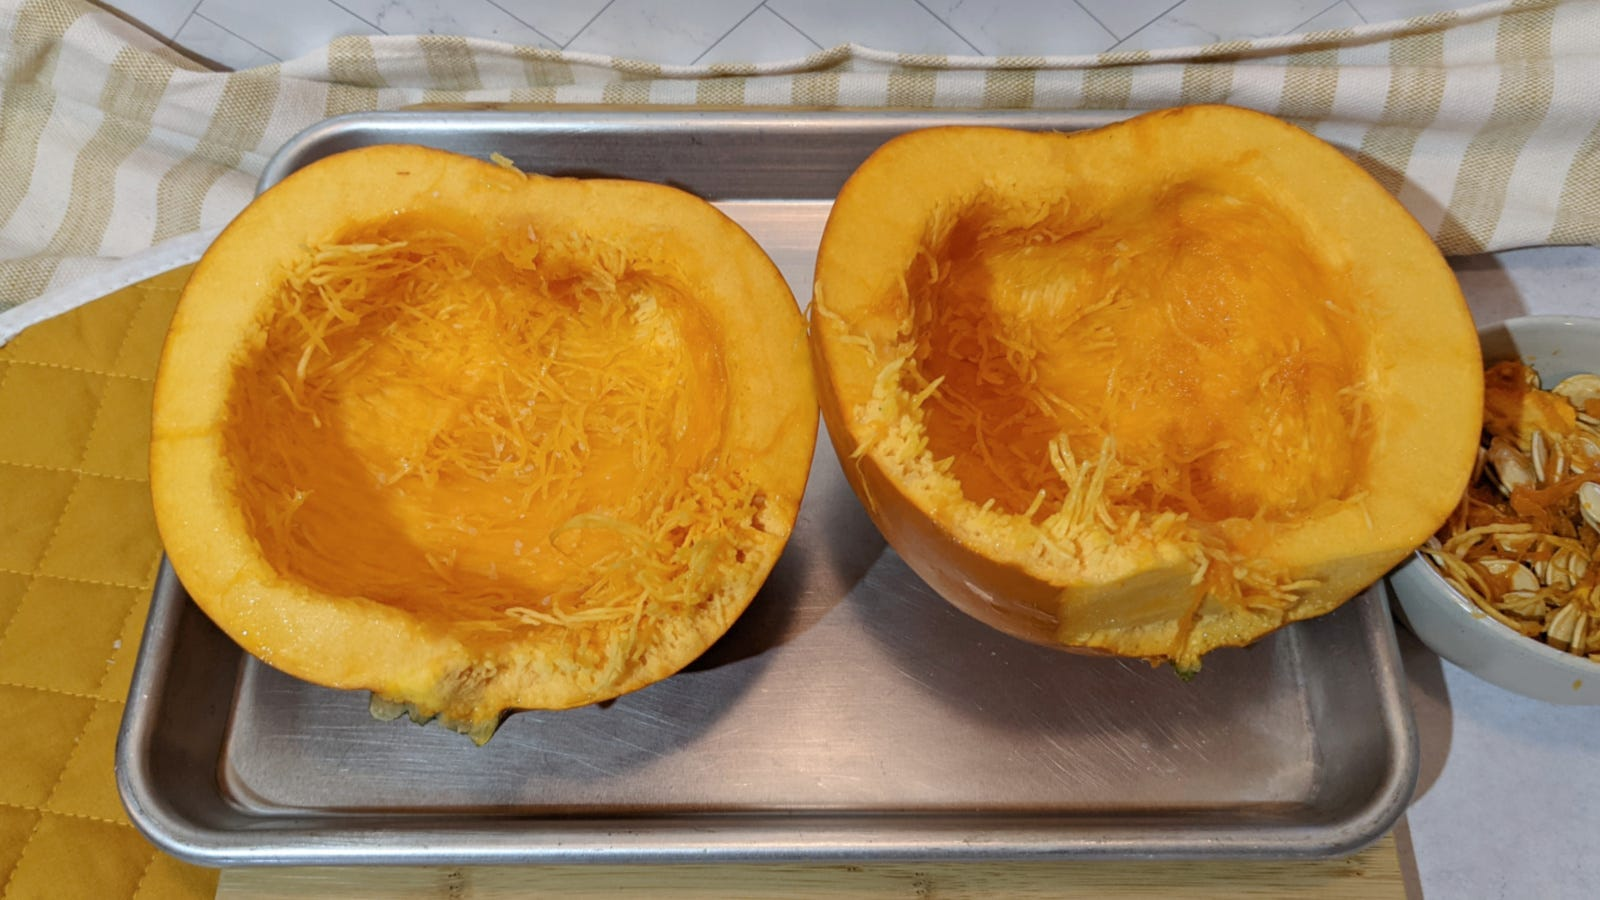 A halved sugar pumpkin with oil massaged on the inside, placed on a sheet tray before going in the oven.